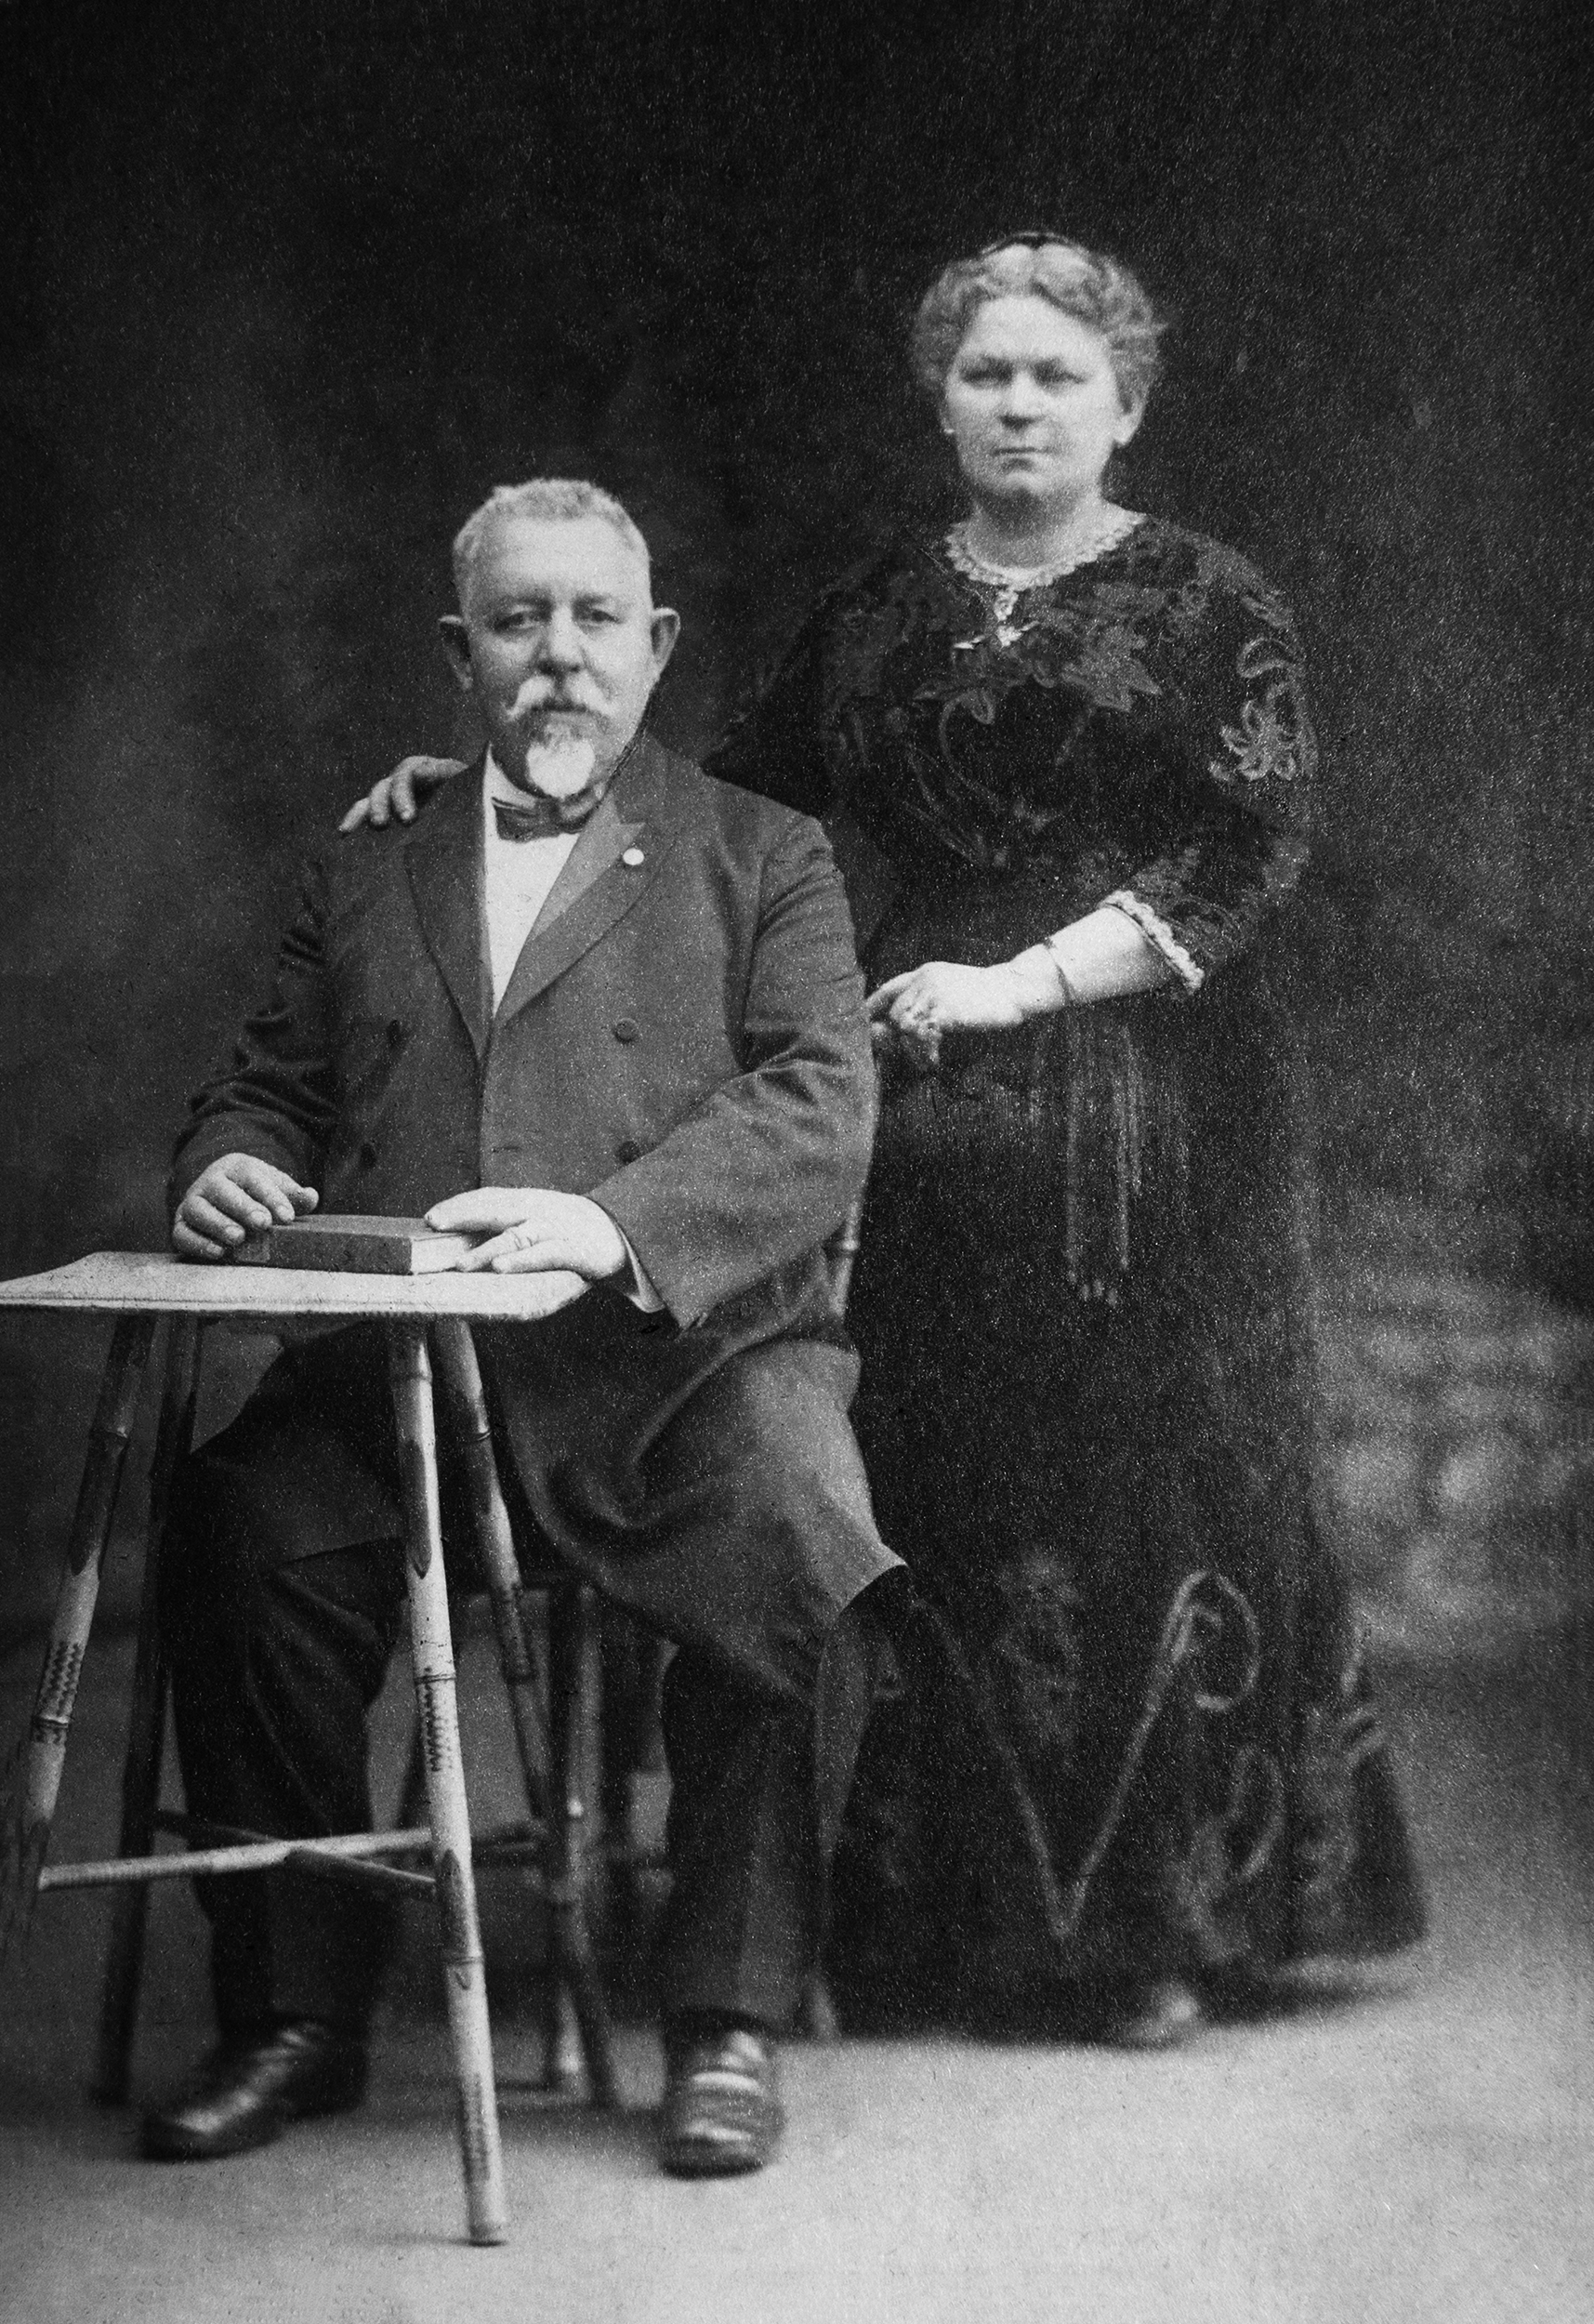 Dora Adalman's mother and her mother's second husband